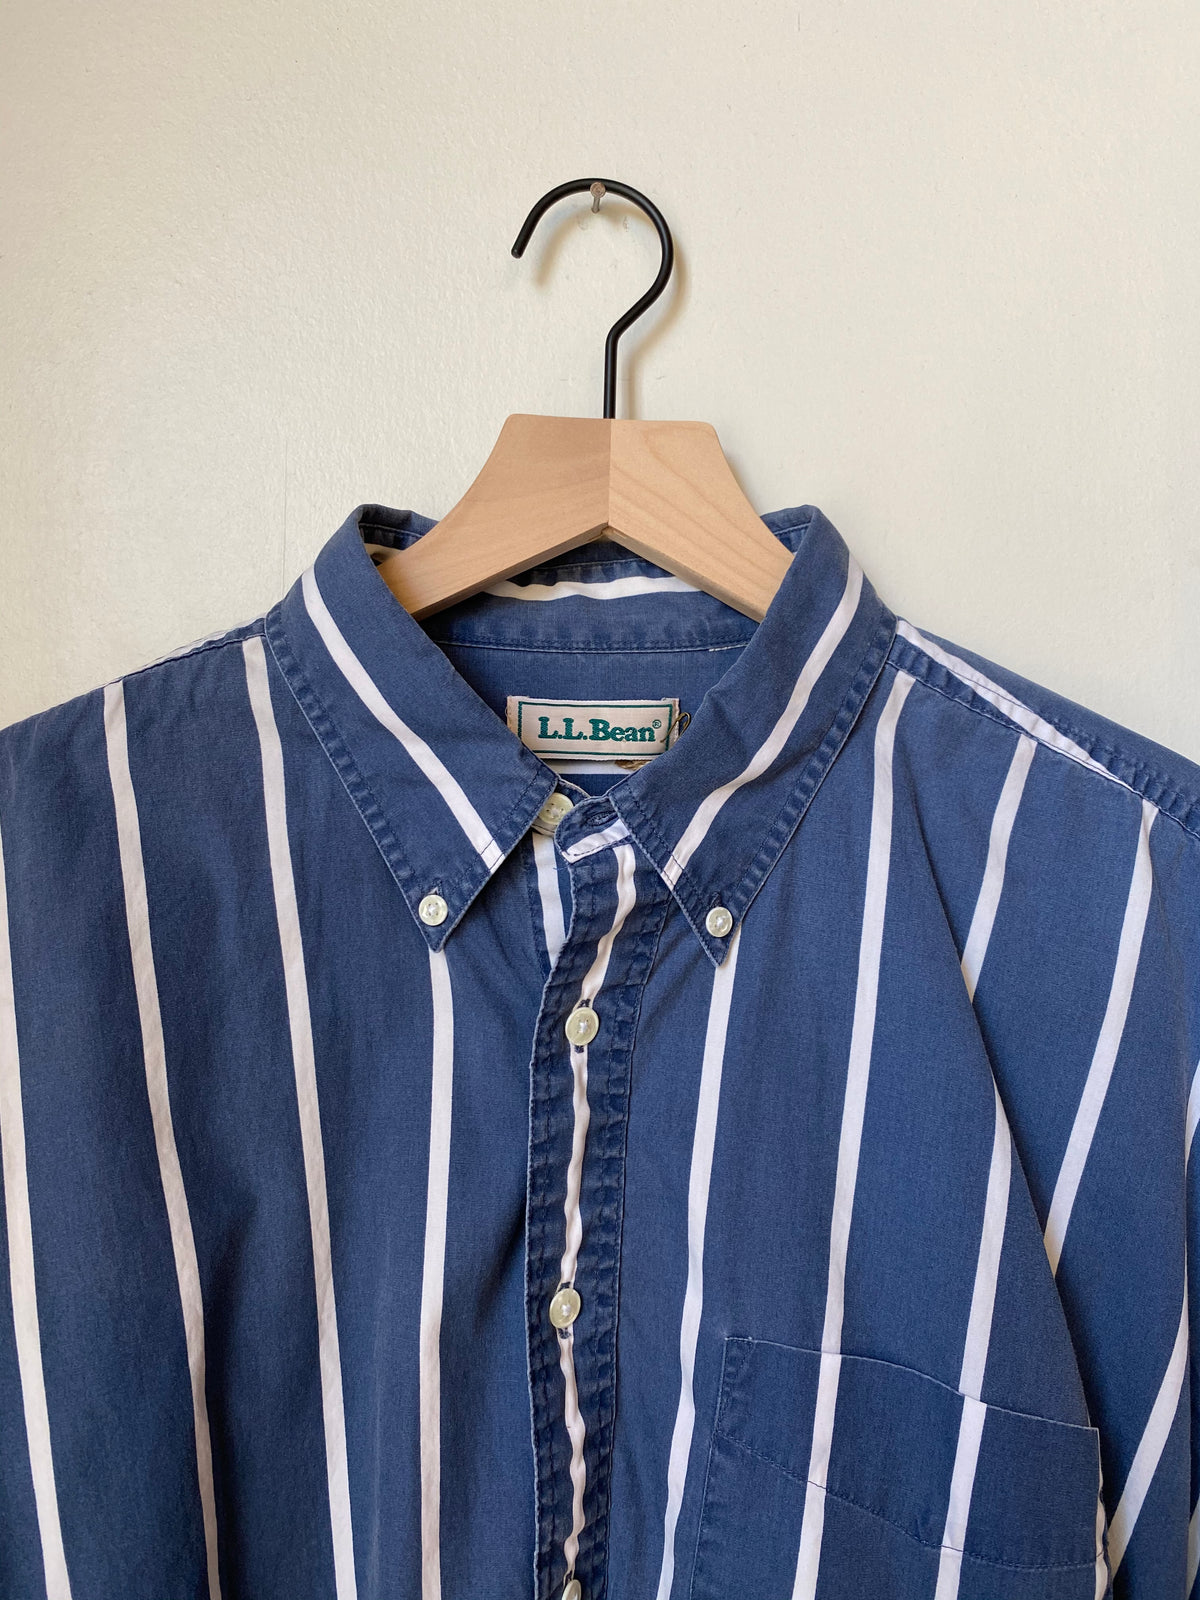 1990's L.L. Bean Striped Shirt